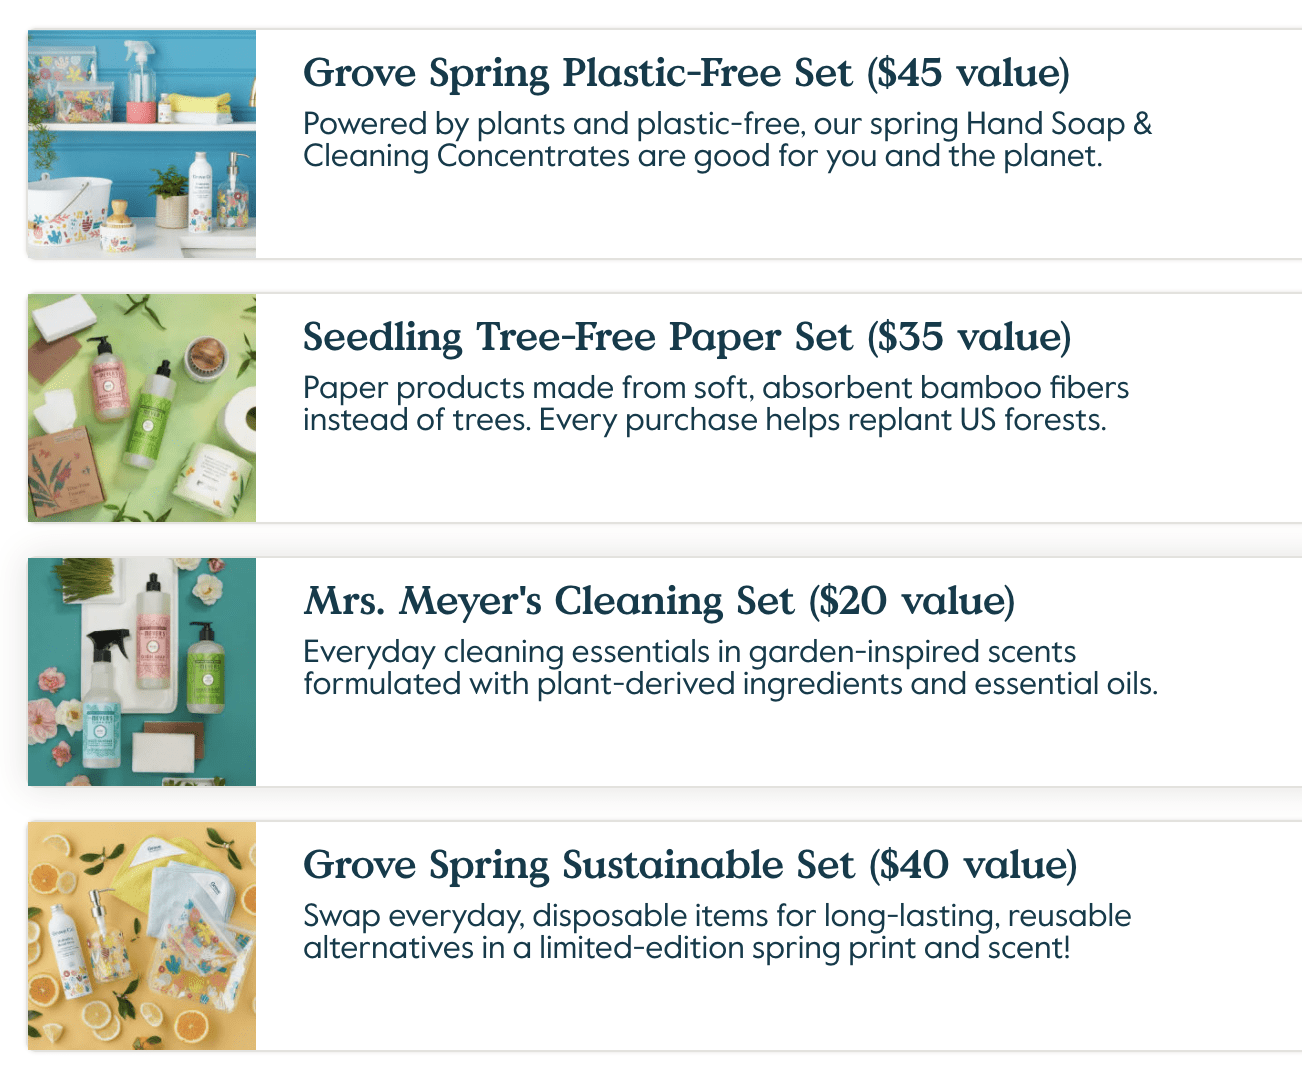 Grove Free Gifts